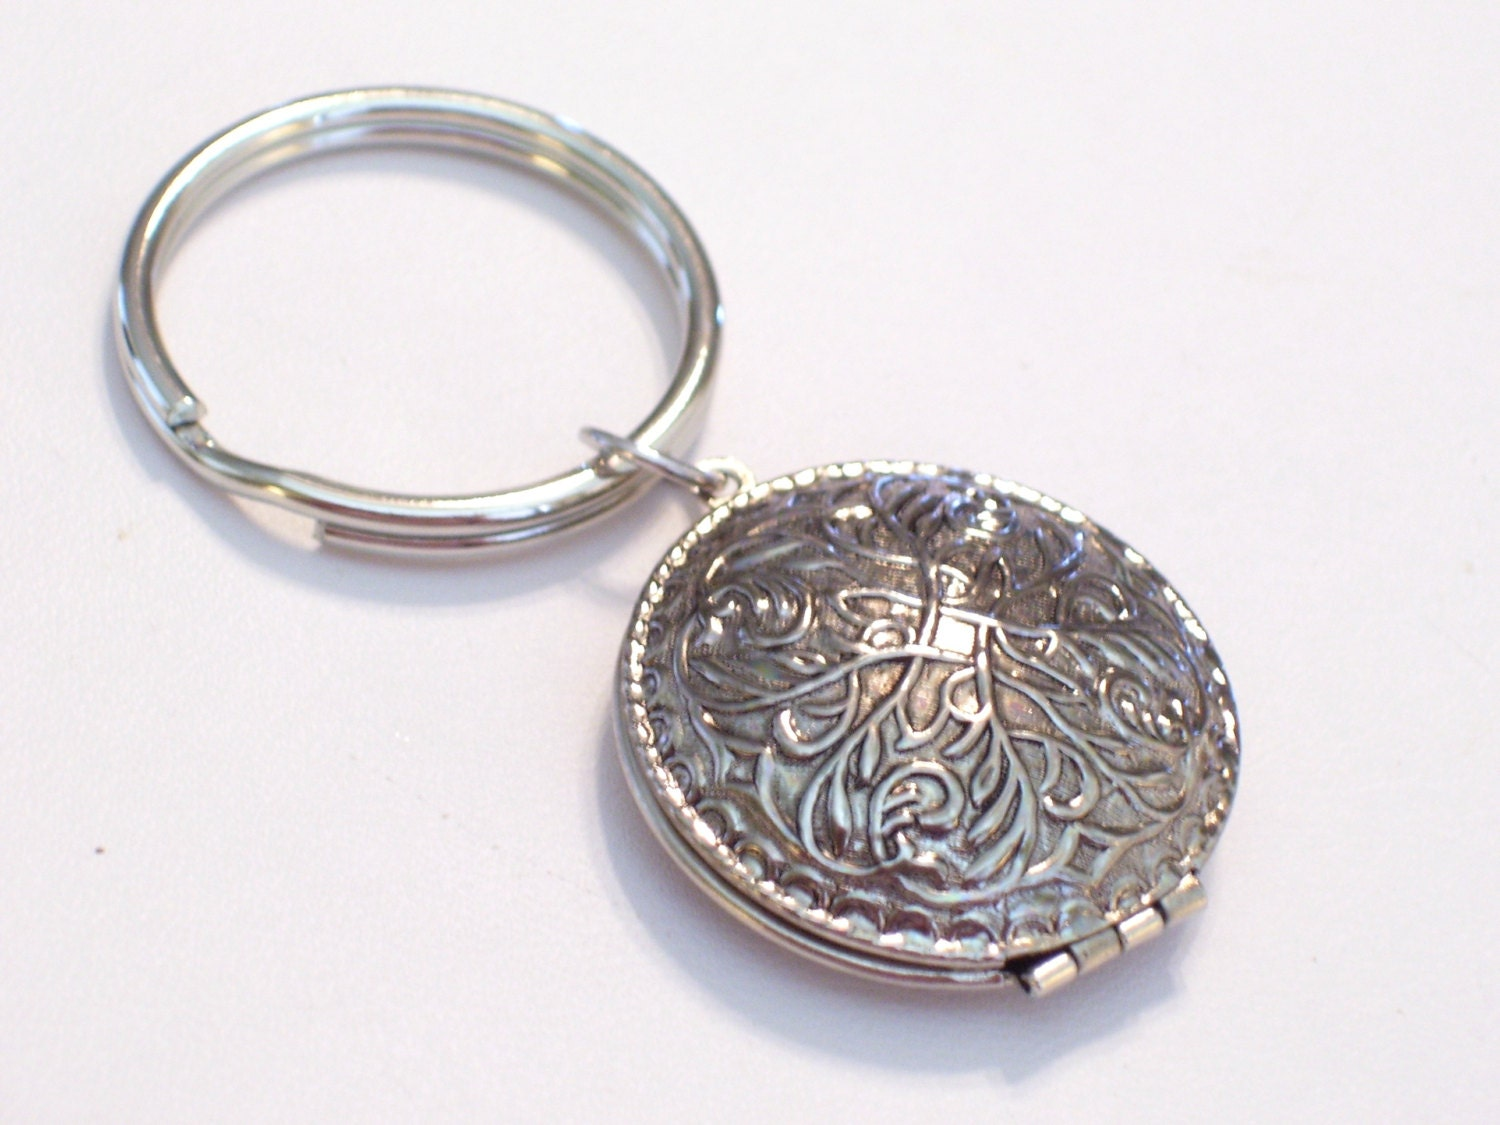 Art Deco Style Locket Key Chain Vintage Antiqued By